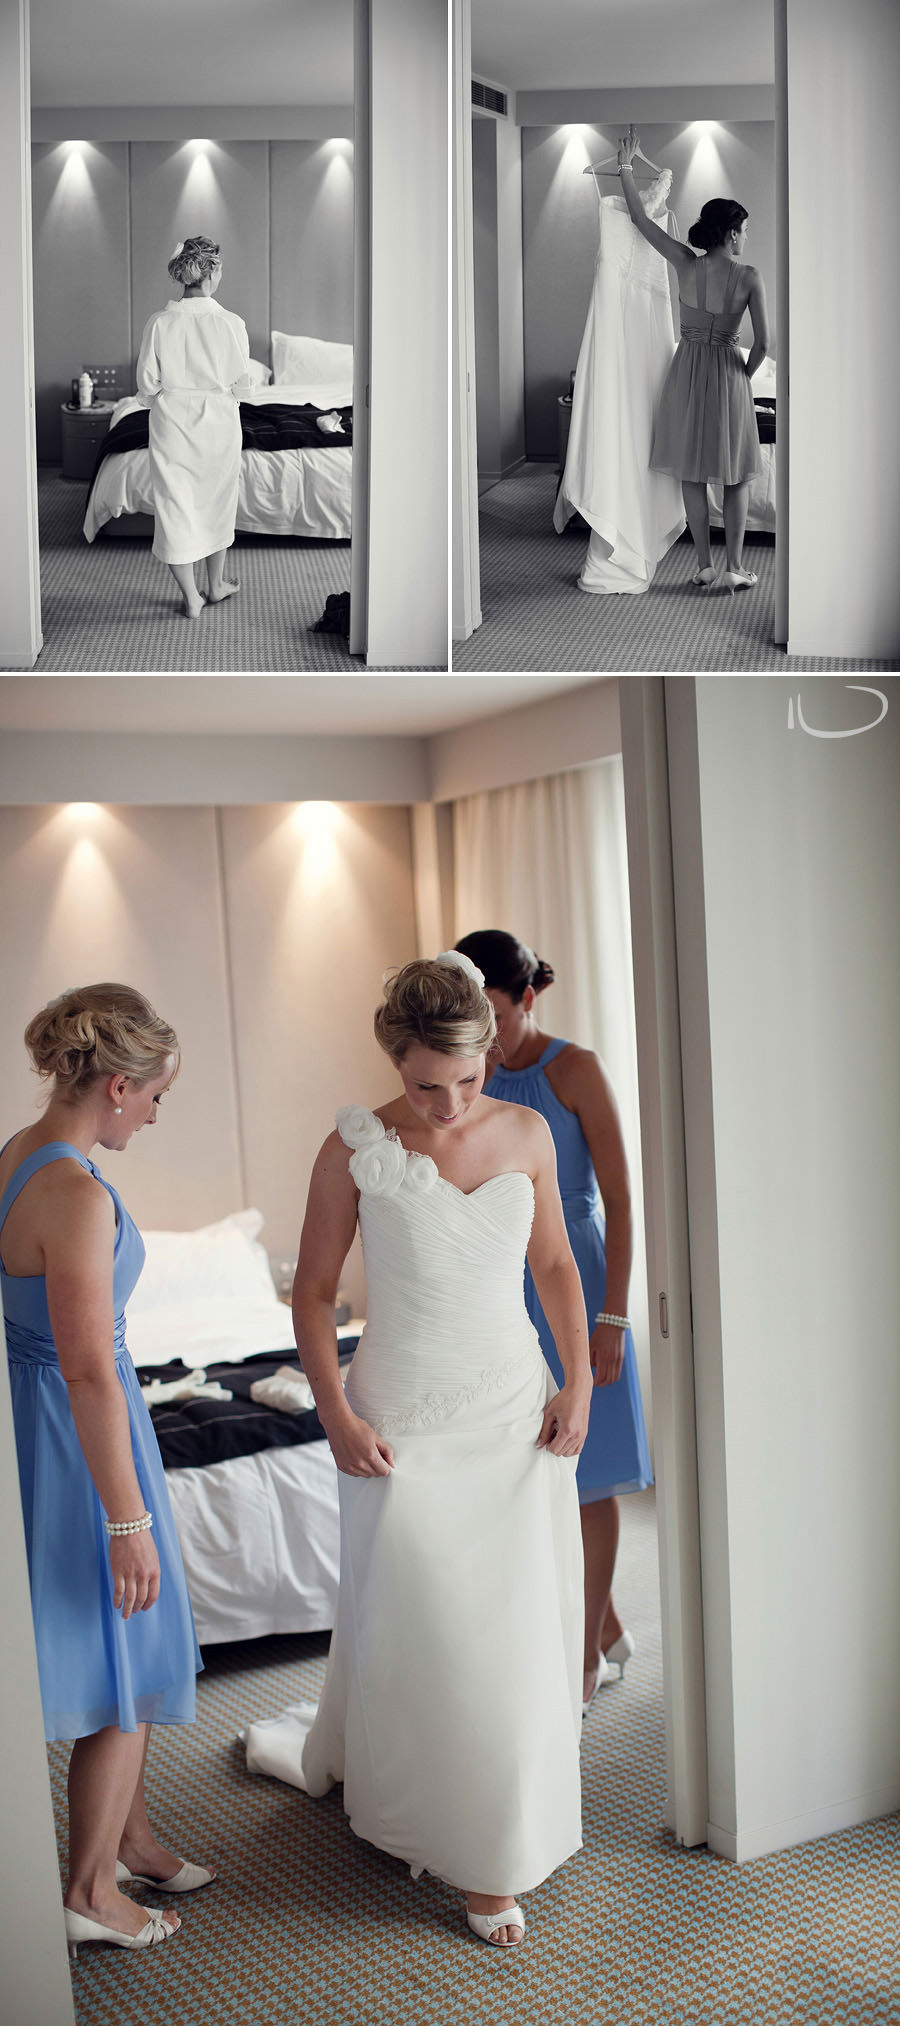 Hotel Realm Wedding Photographer: Bride getting ready